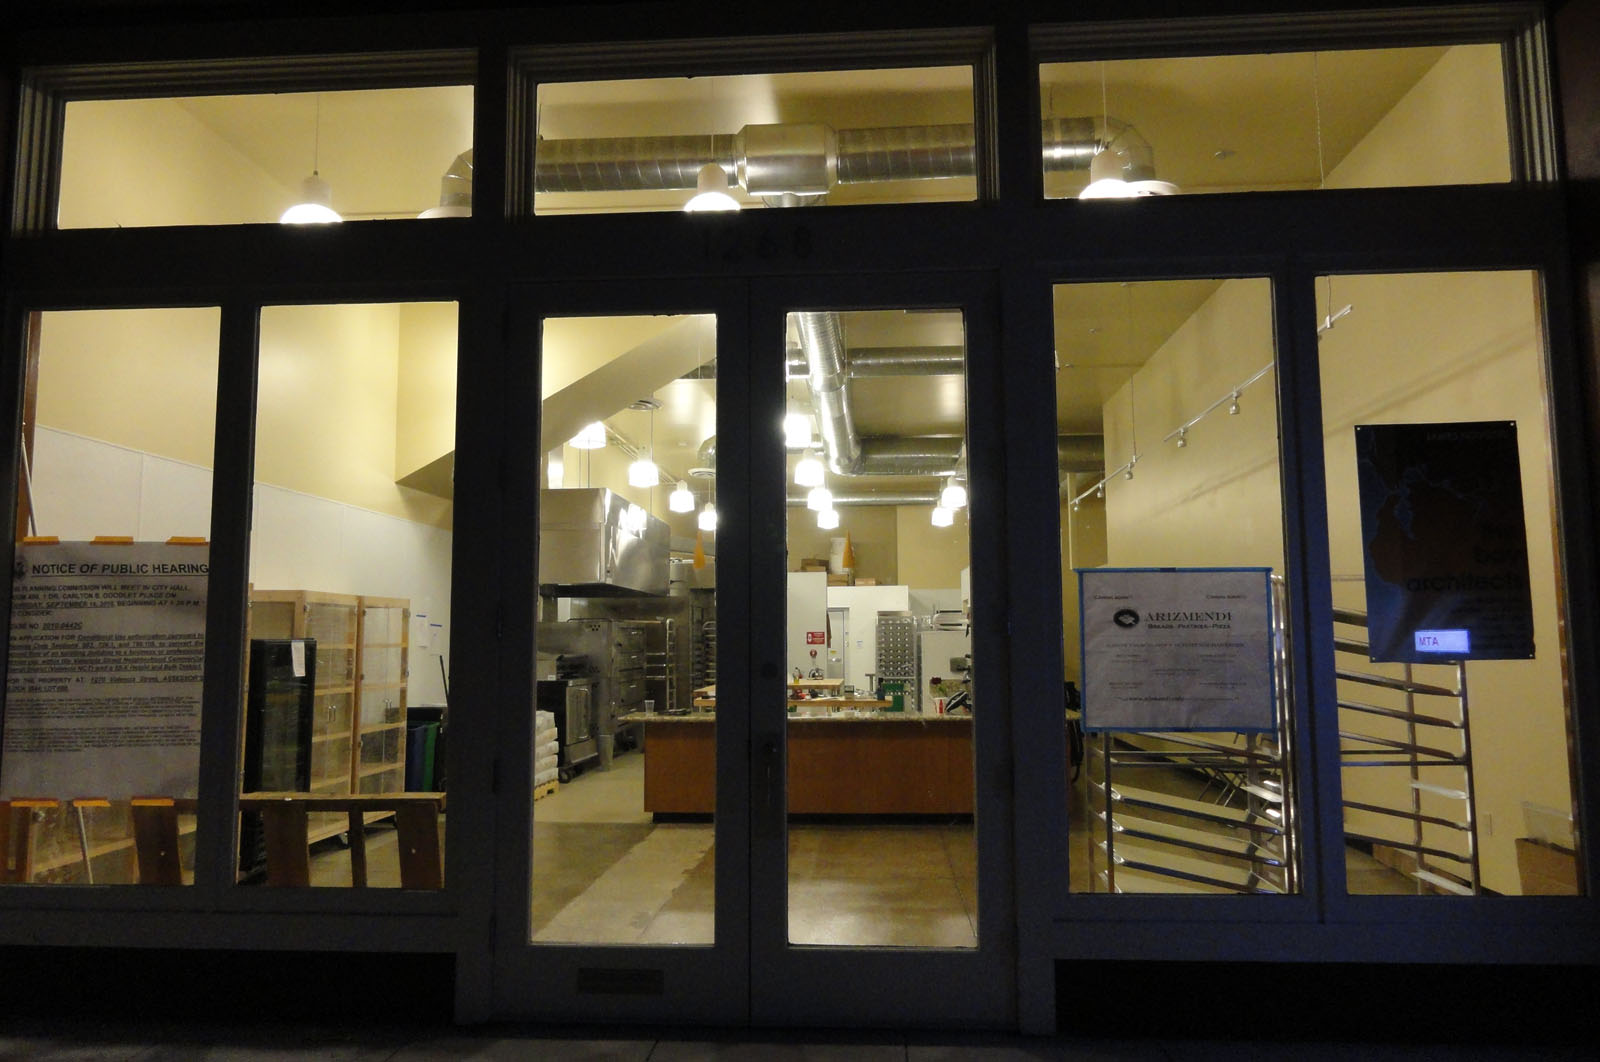 Arizmendi Serving Up Jobs With Ownership in the Mission